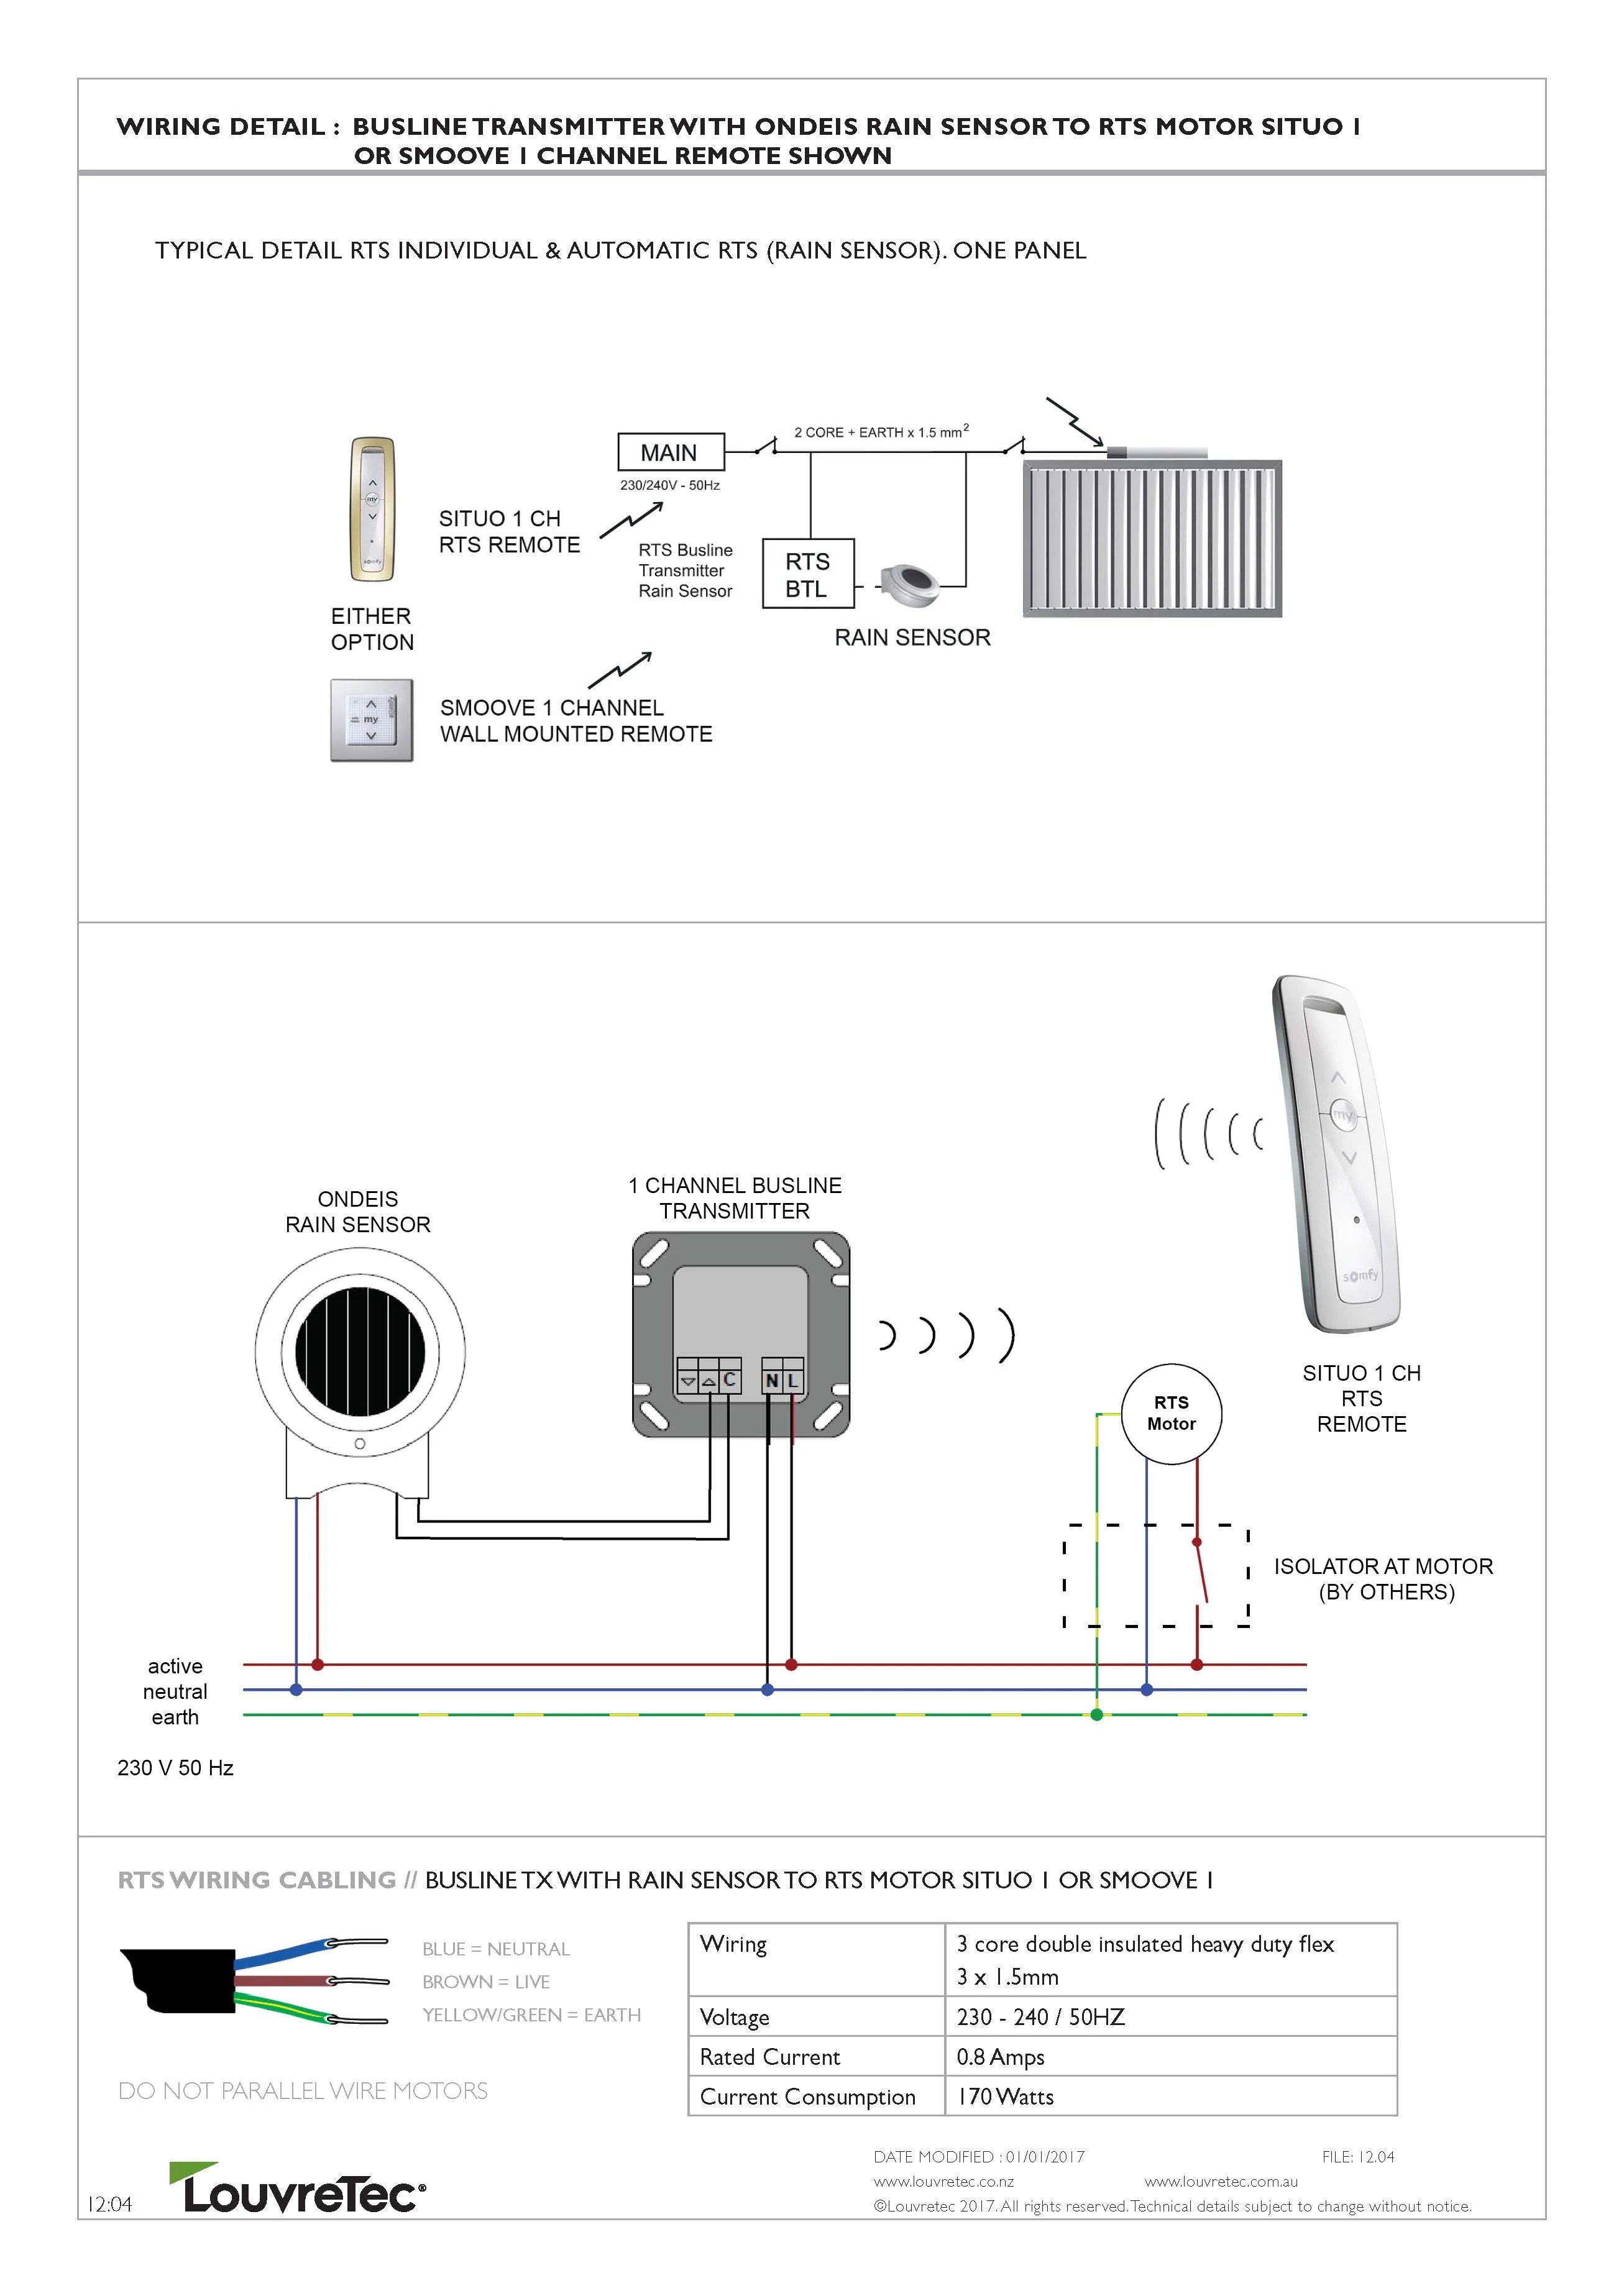 actuator wiring diagram 2006 toyota tacoma parts technical diagrams louvretec rts individual auto 1 panel 12 04